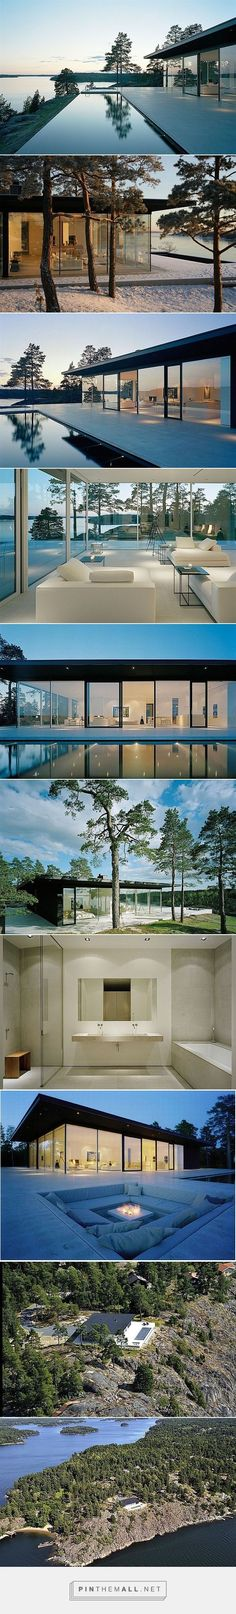 Stunning Swedish Villa With Lake Views modern/contemporary art. The house was designed by John Robert Nilsson to prove the seamless connection between nature and design. There is a lavish swimming pool that looks more like an infinity pool, floor to ceiling windows that invites nature in, minimal, unfussy and straightforward interiors along with an amazing couch nook outside